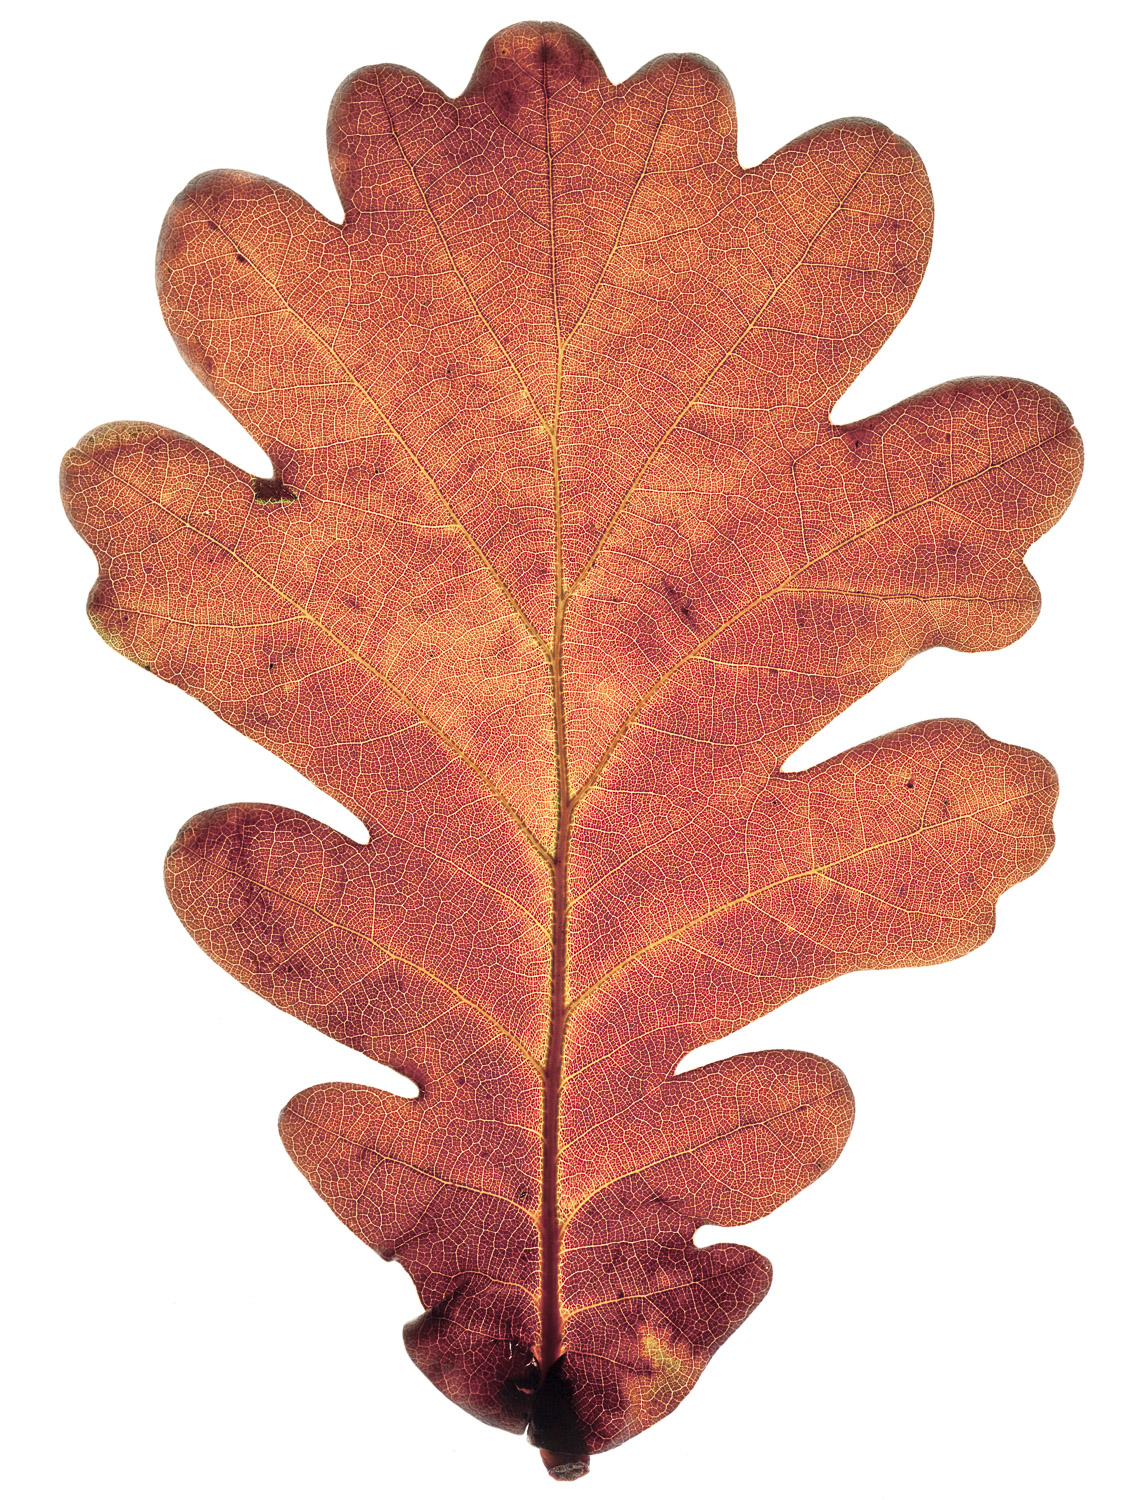 Dried Leaf #4, 2009